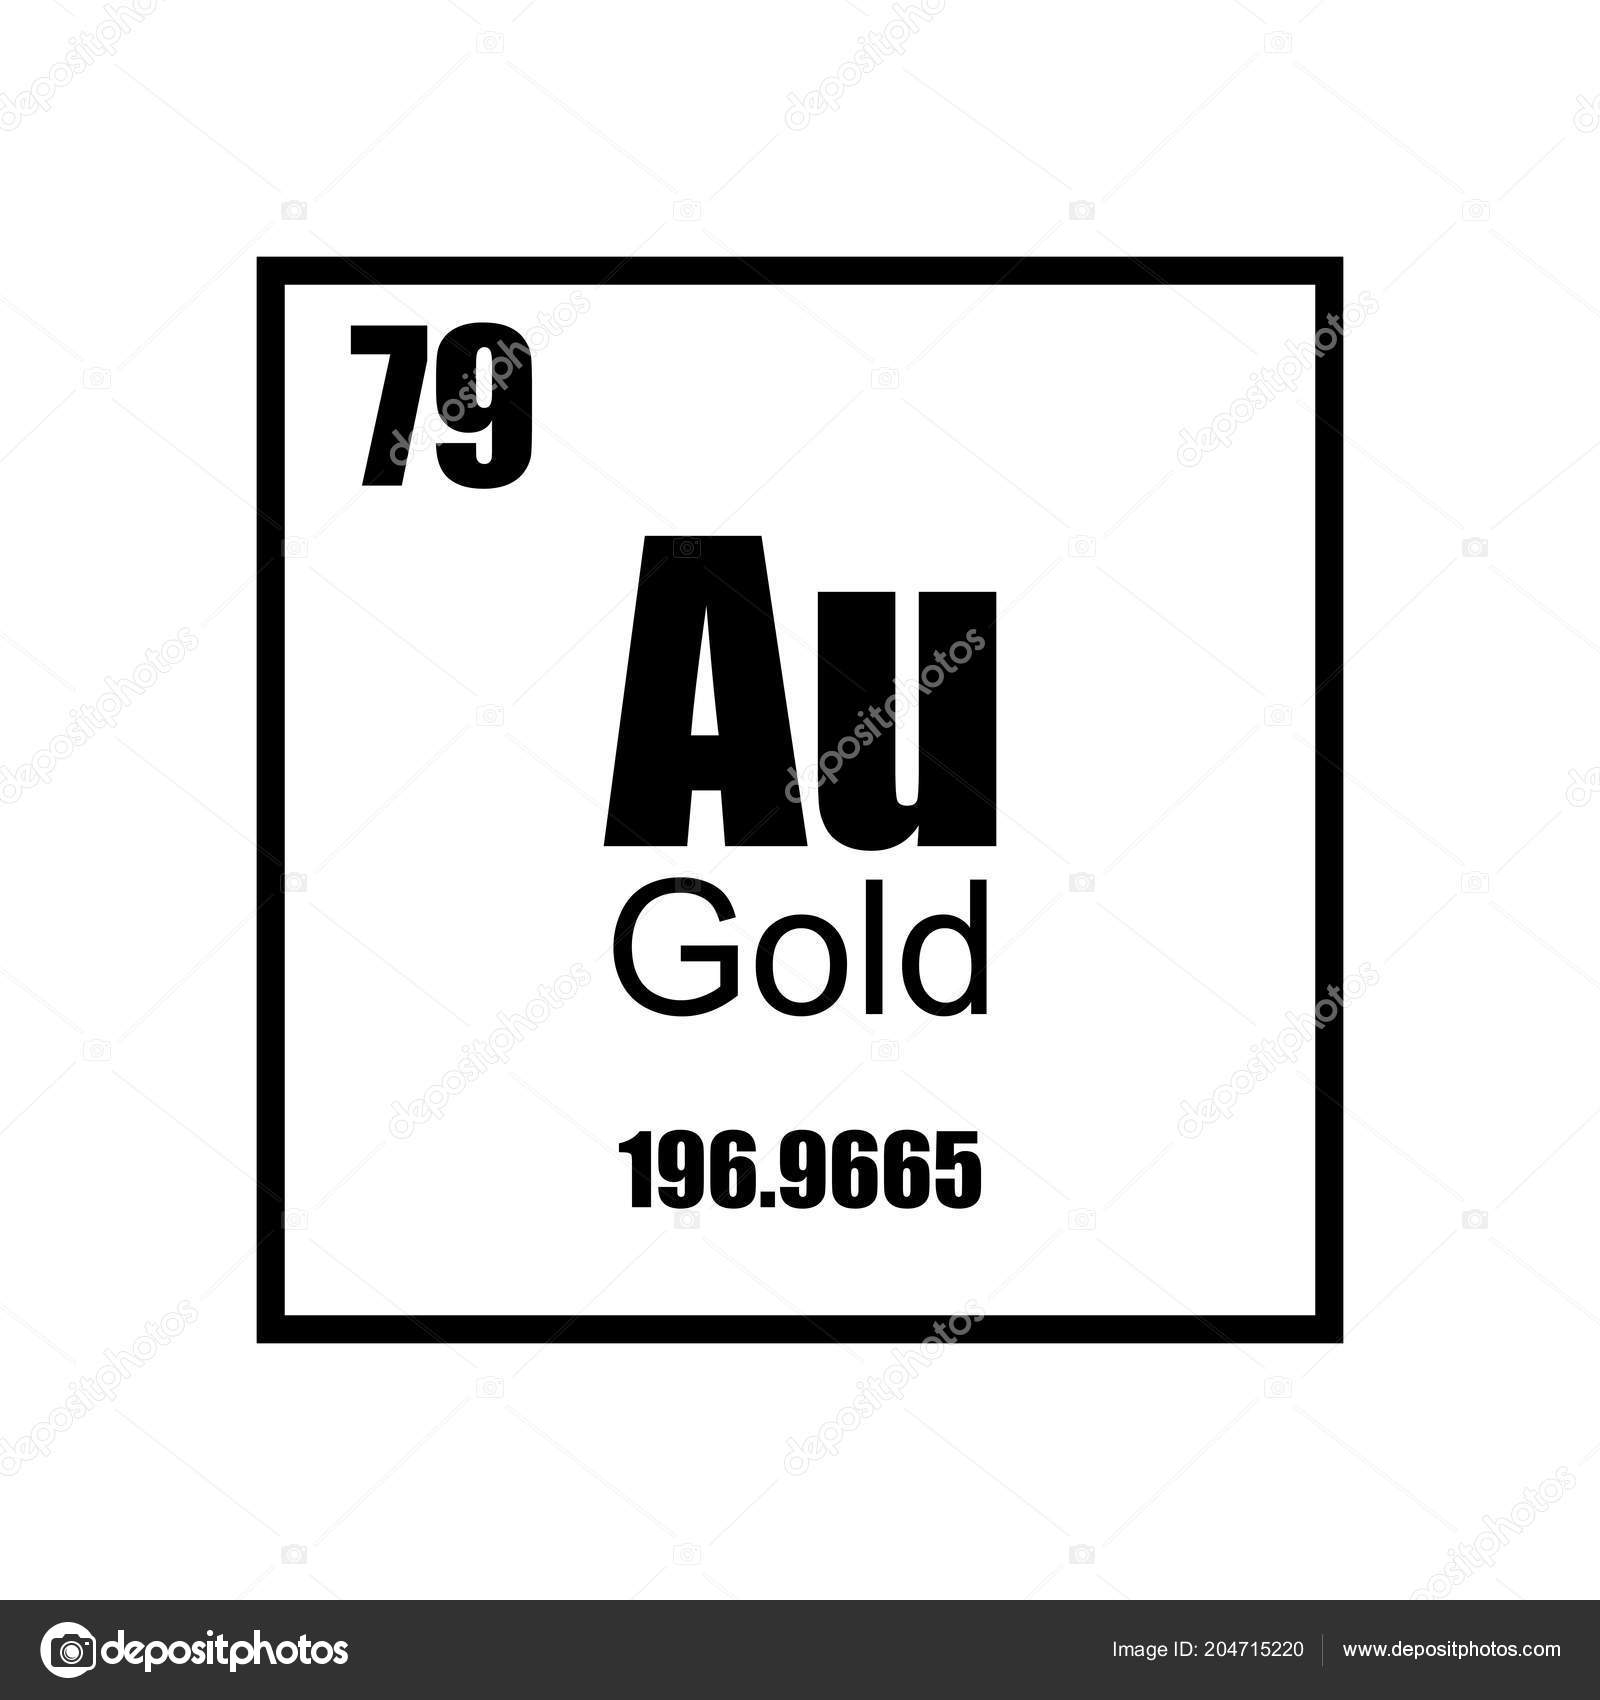 Gold element periodic table stock vector mgonchar 204715220 gold element periodic table stock vector urtaz Images